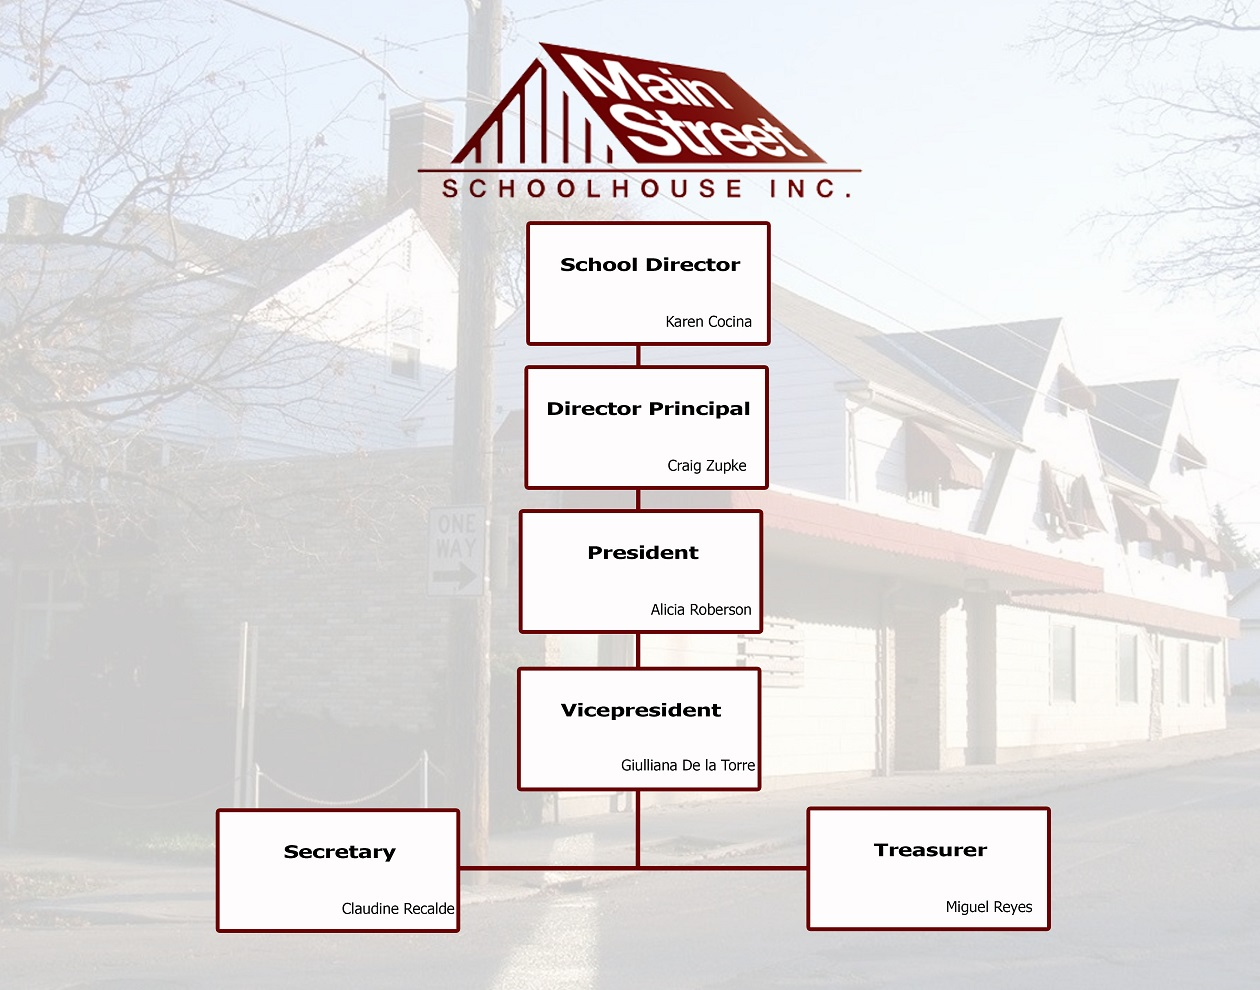 Organization chart main street schoolhouse language institute english skills in small interactive classes to continue their professional goals in us universities or to excel in their career choice and provides ccuart Choice Image